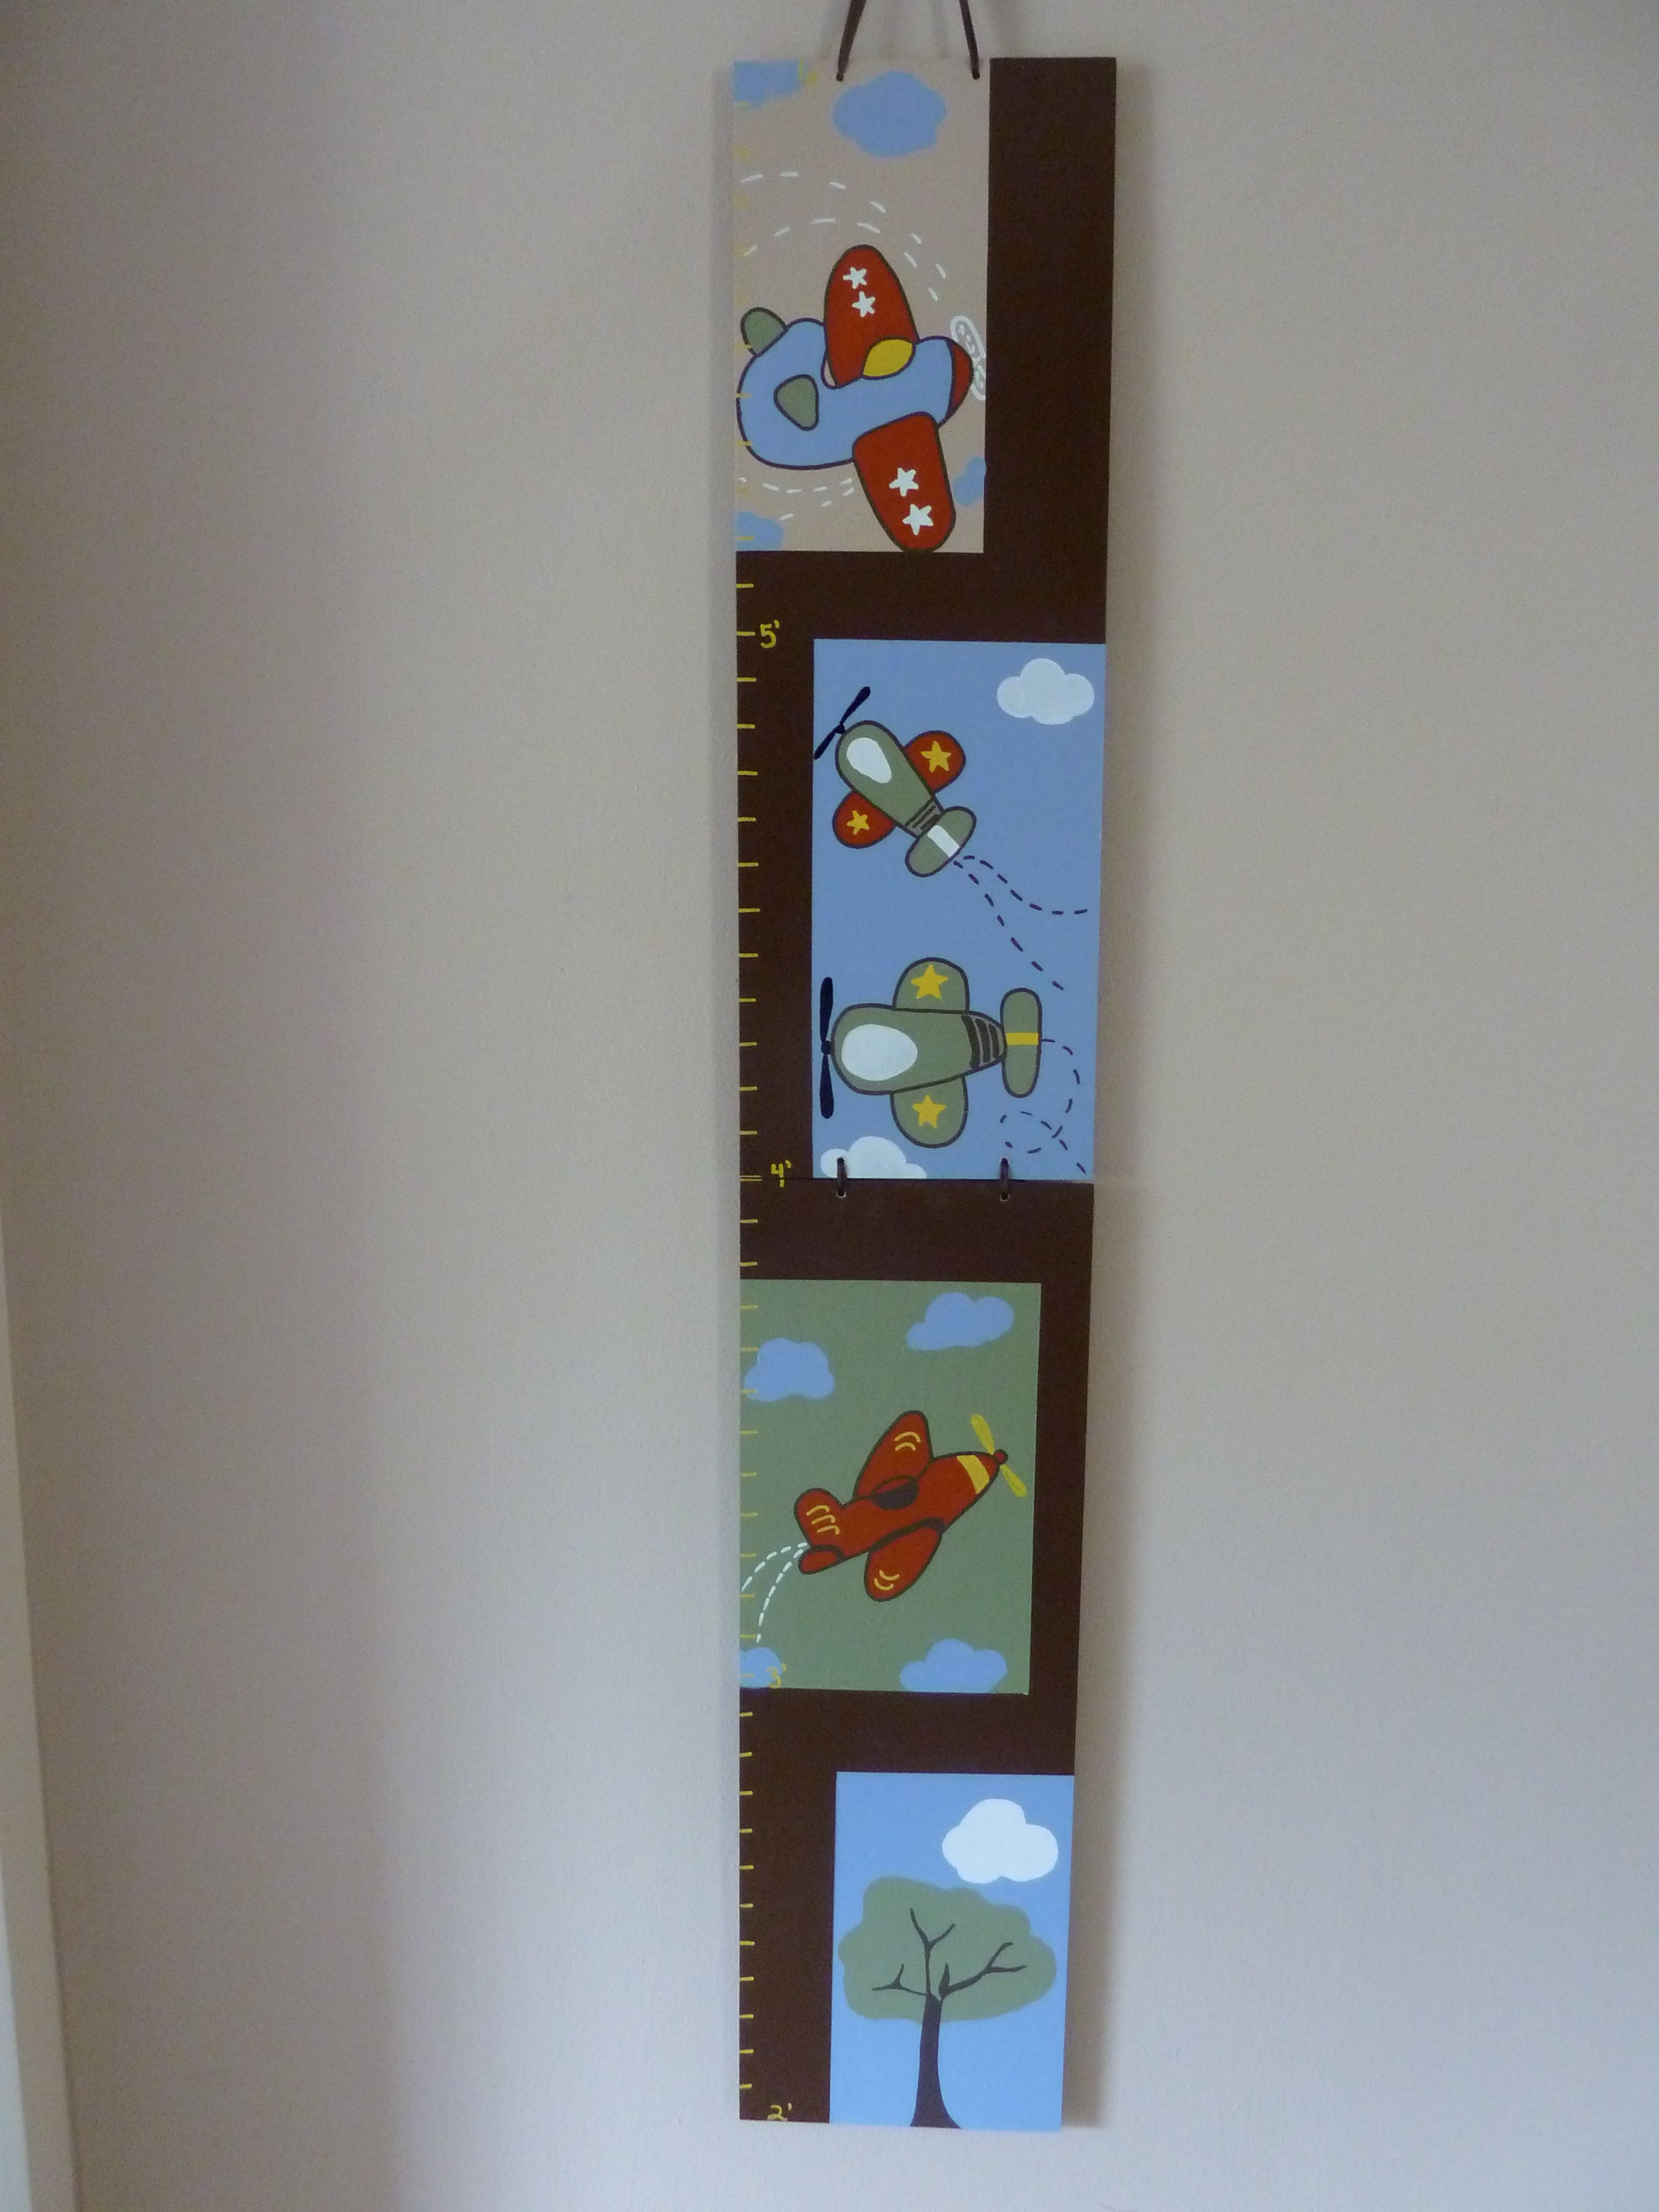 Personalized growth charts for kids are fun additions to rooms personalized growth charts for kids are fun additions to roomspecially when the nvjuhfo Gallery